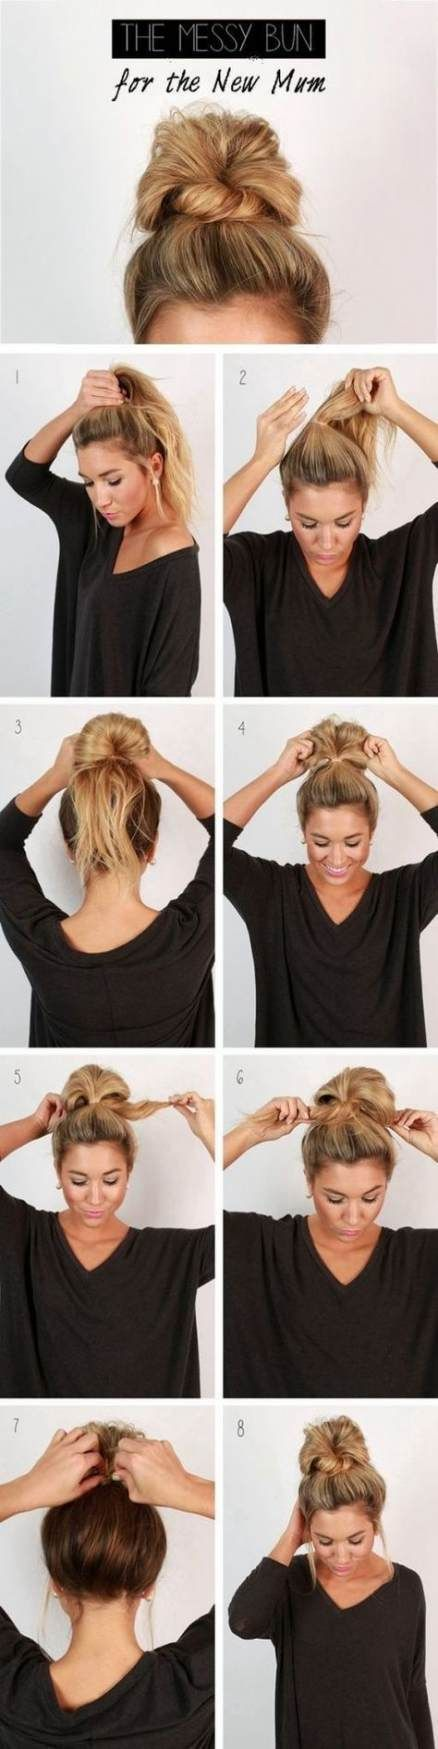 17+ Easy hairstyles for lazy days trends